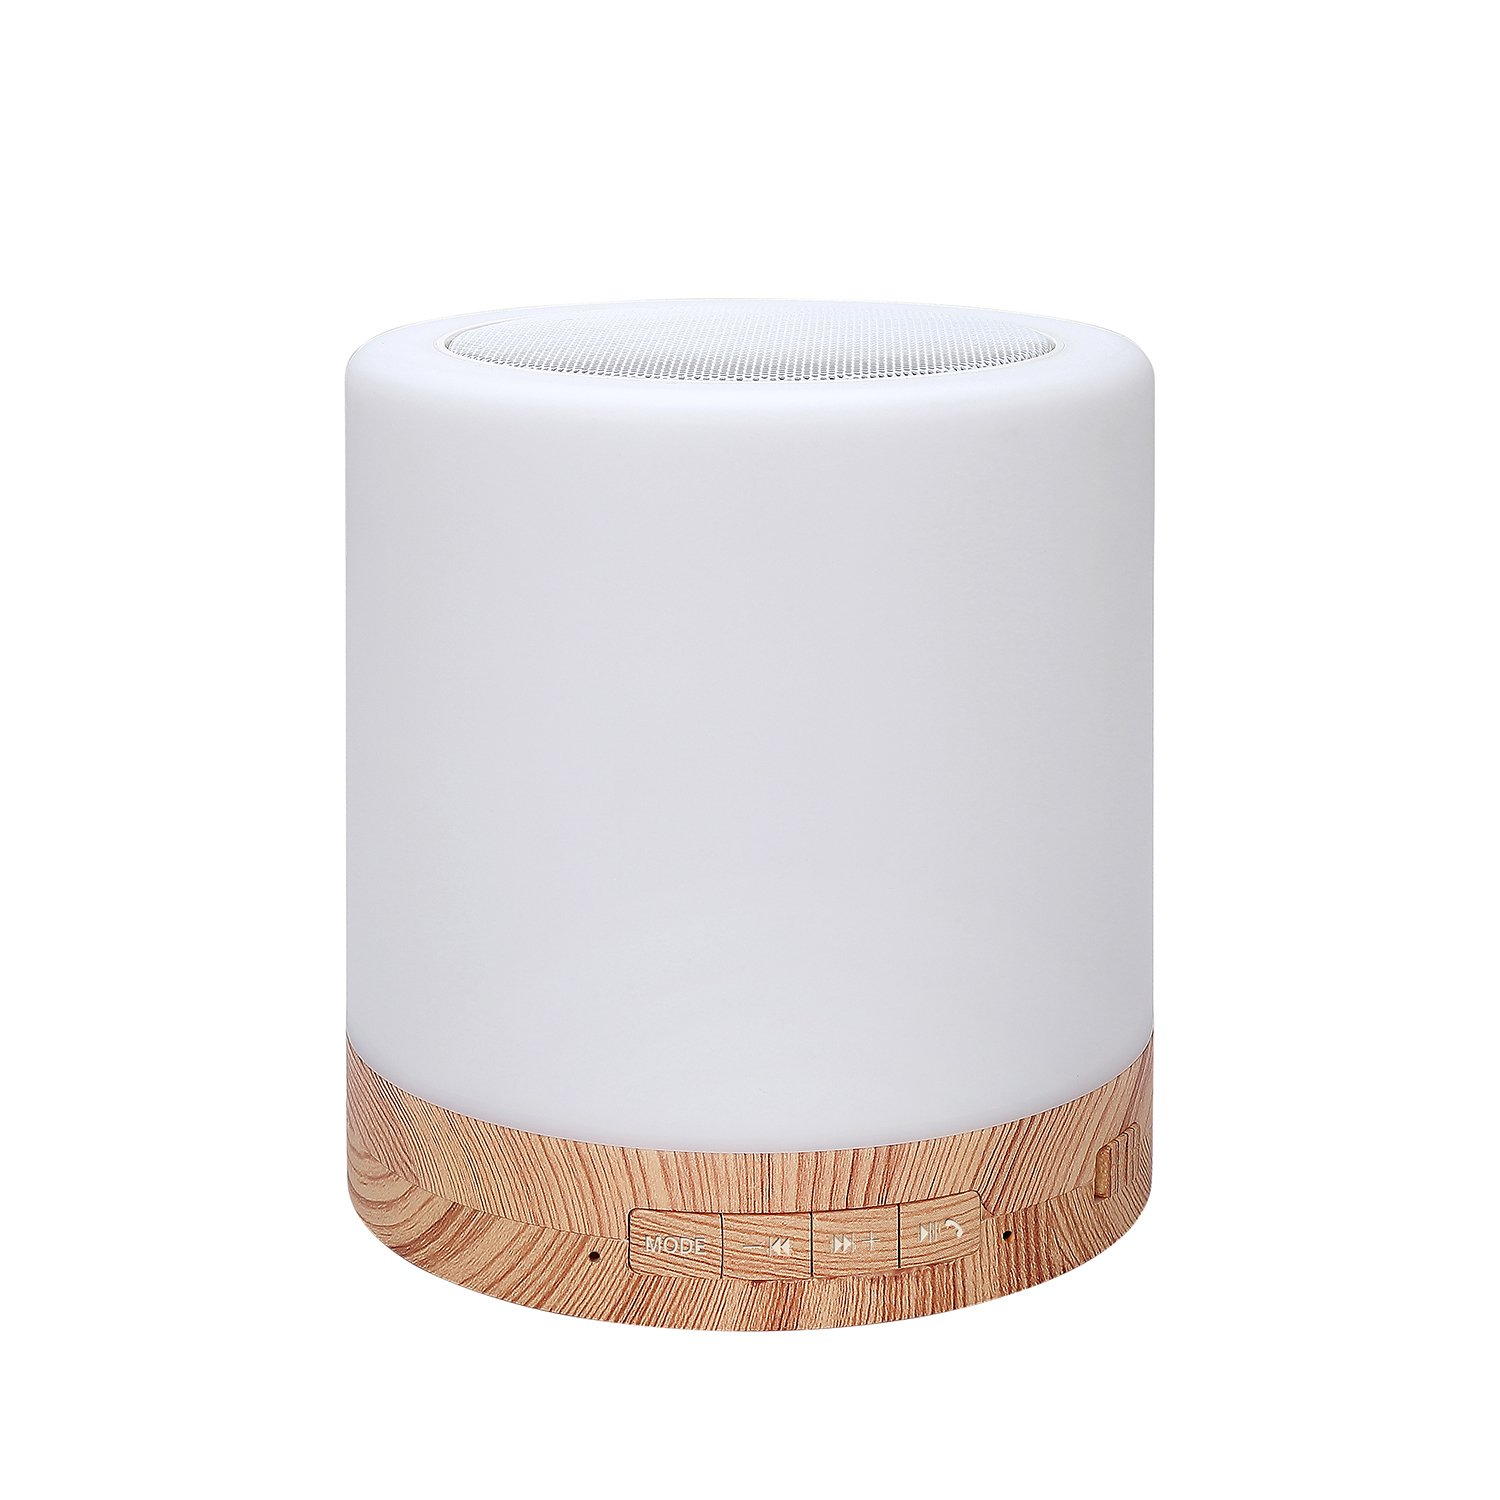 Table Lamp with Bluetooth Speaker – Perfect for Bedside Night Stand, Desk or Table – Six Color LED Light with Touch Control – Audio Speaker - Faux Wood Base